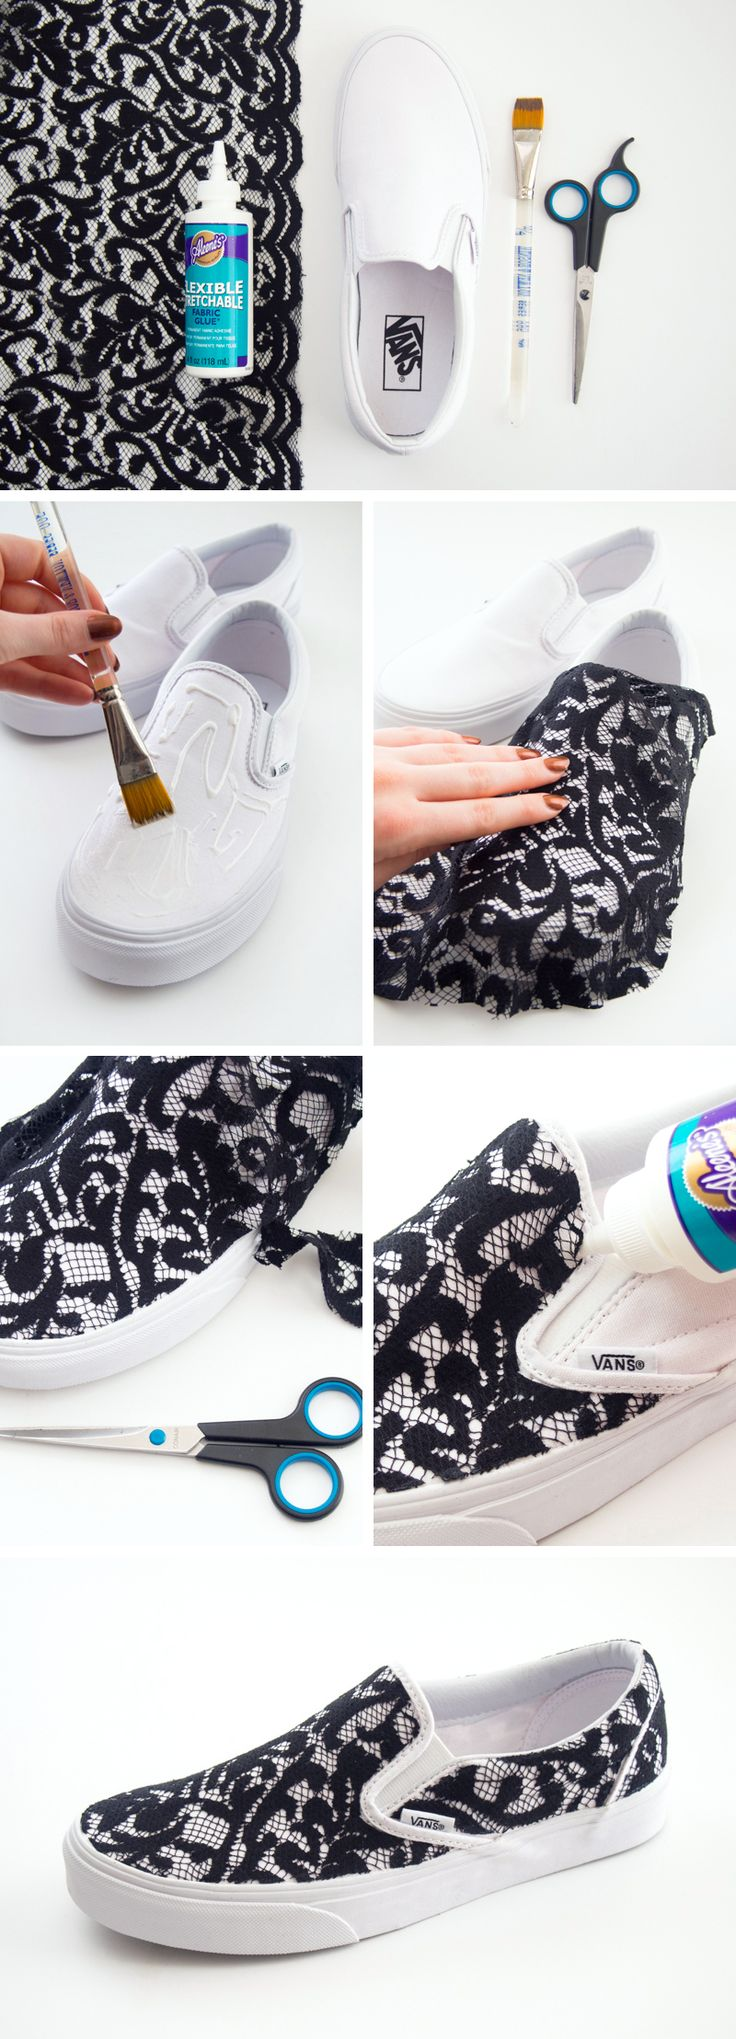 DIY: lace slip-on sneakers: Diy Shoes, Ideas, Vans, Diy Lace, Diy Crafts, Diy'S, Diy Sneakers, Diy Clothing, Lace Shoes